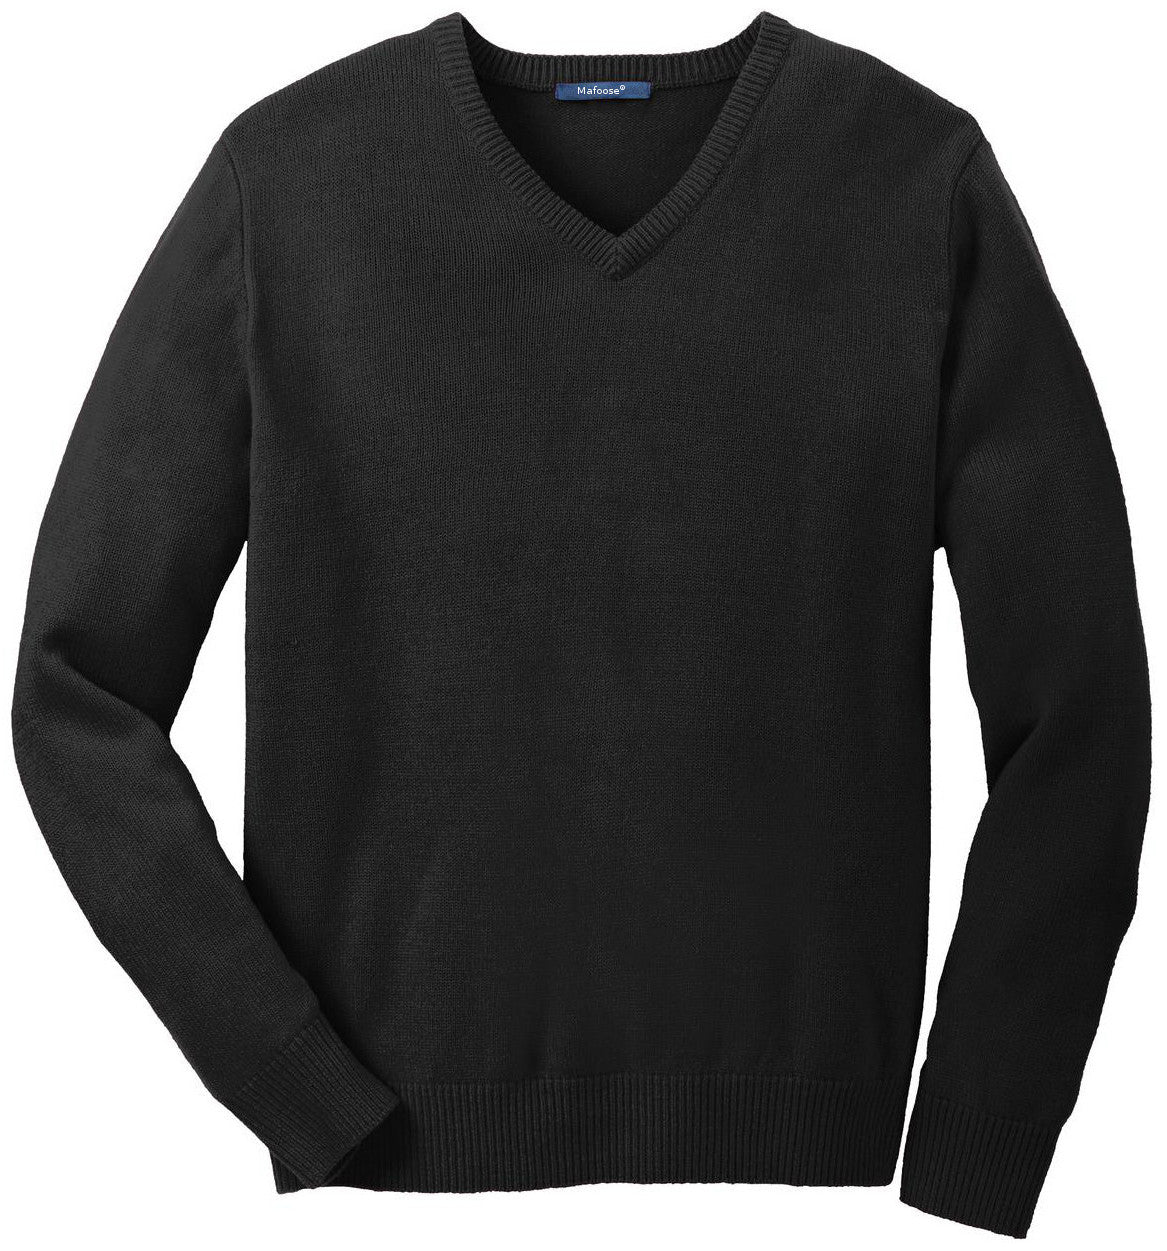 Mafoose Men's Value V-Neck Sweater Black-Front